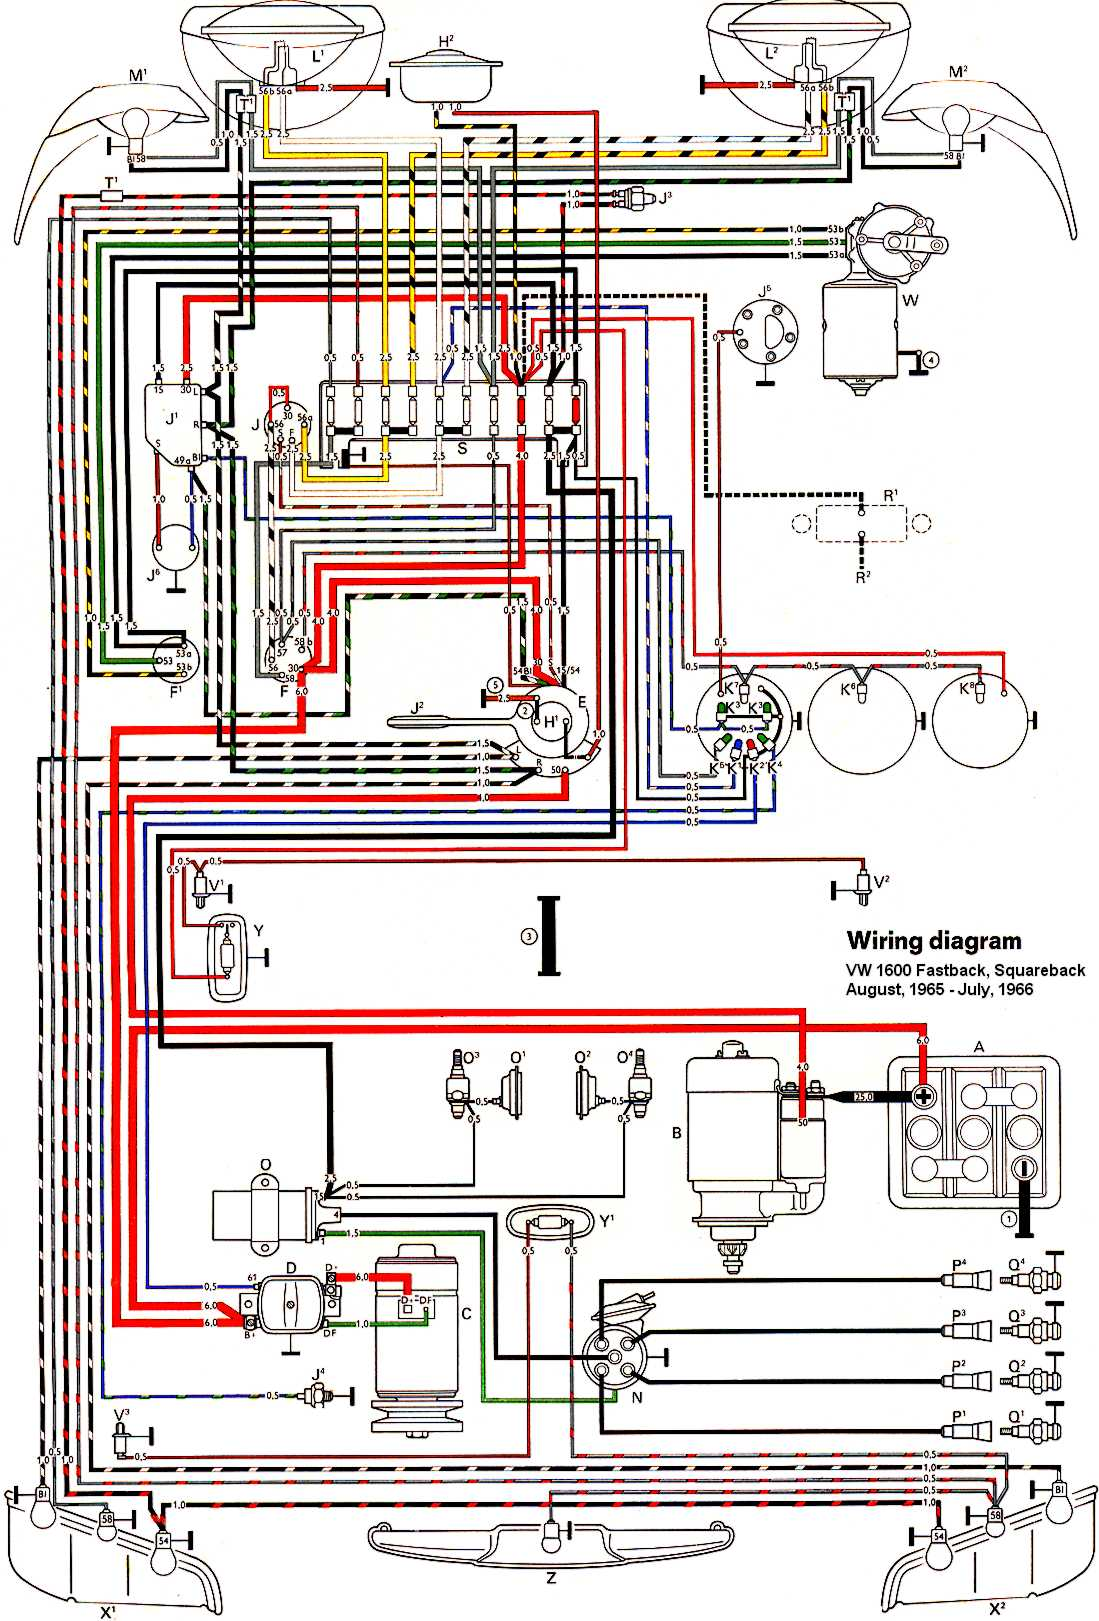 1970 vw relay diagram 1970 vw wiring digram